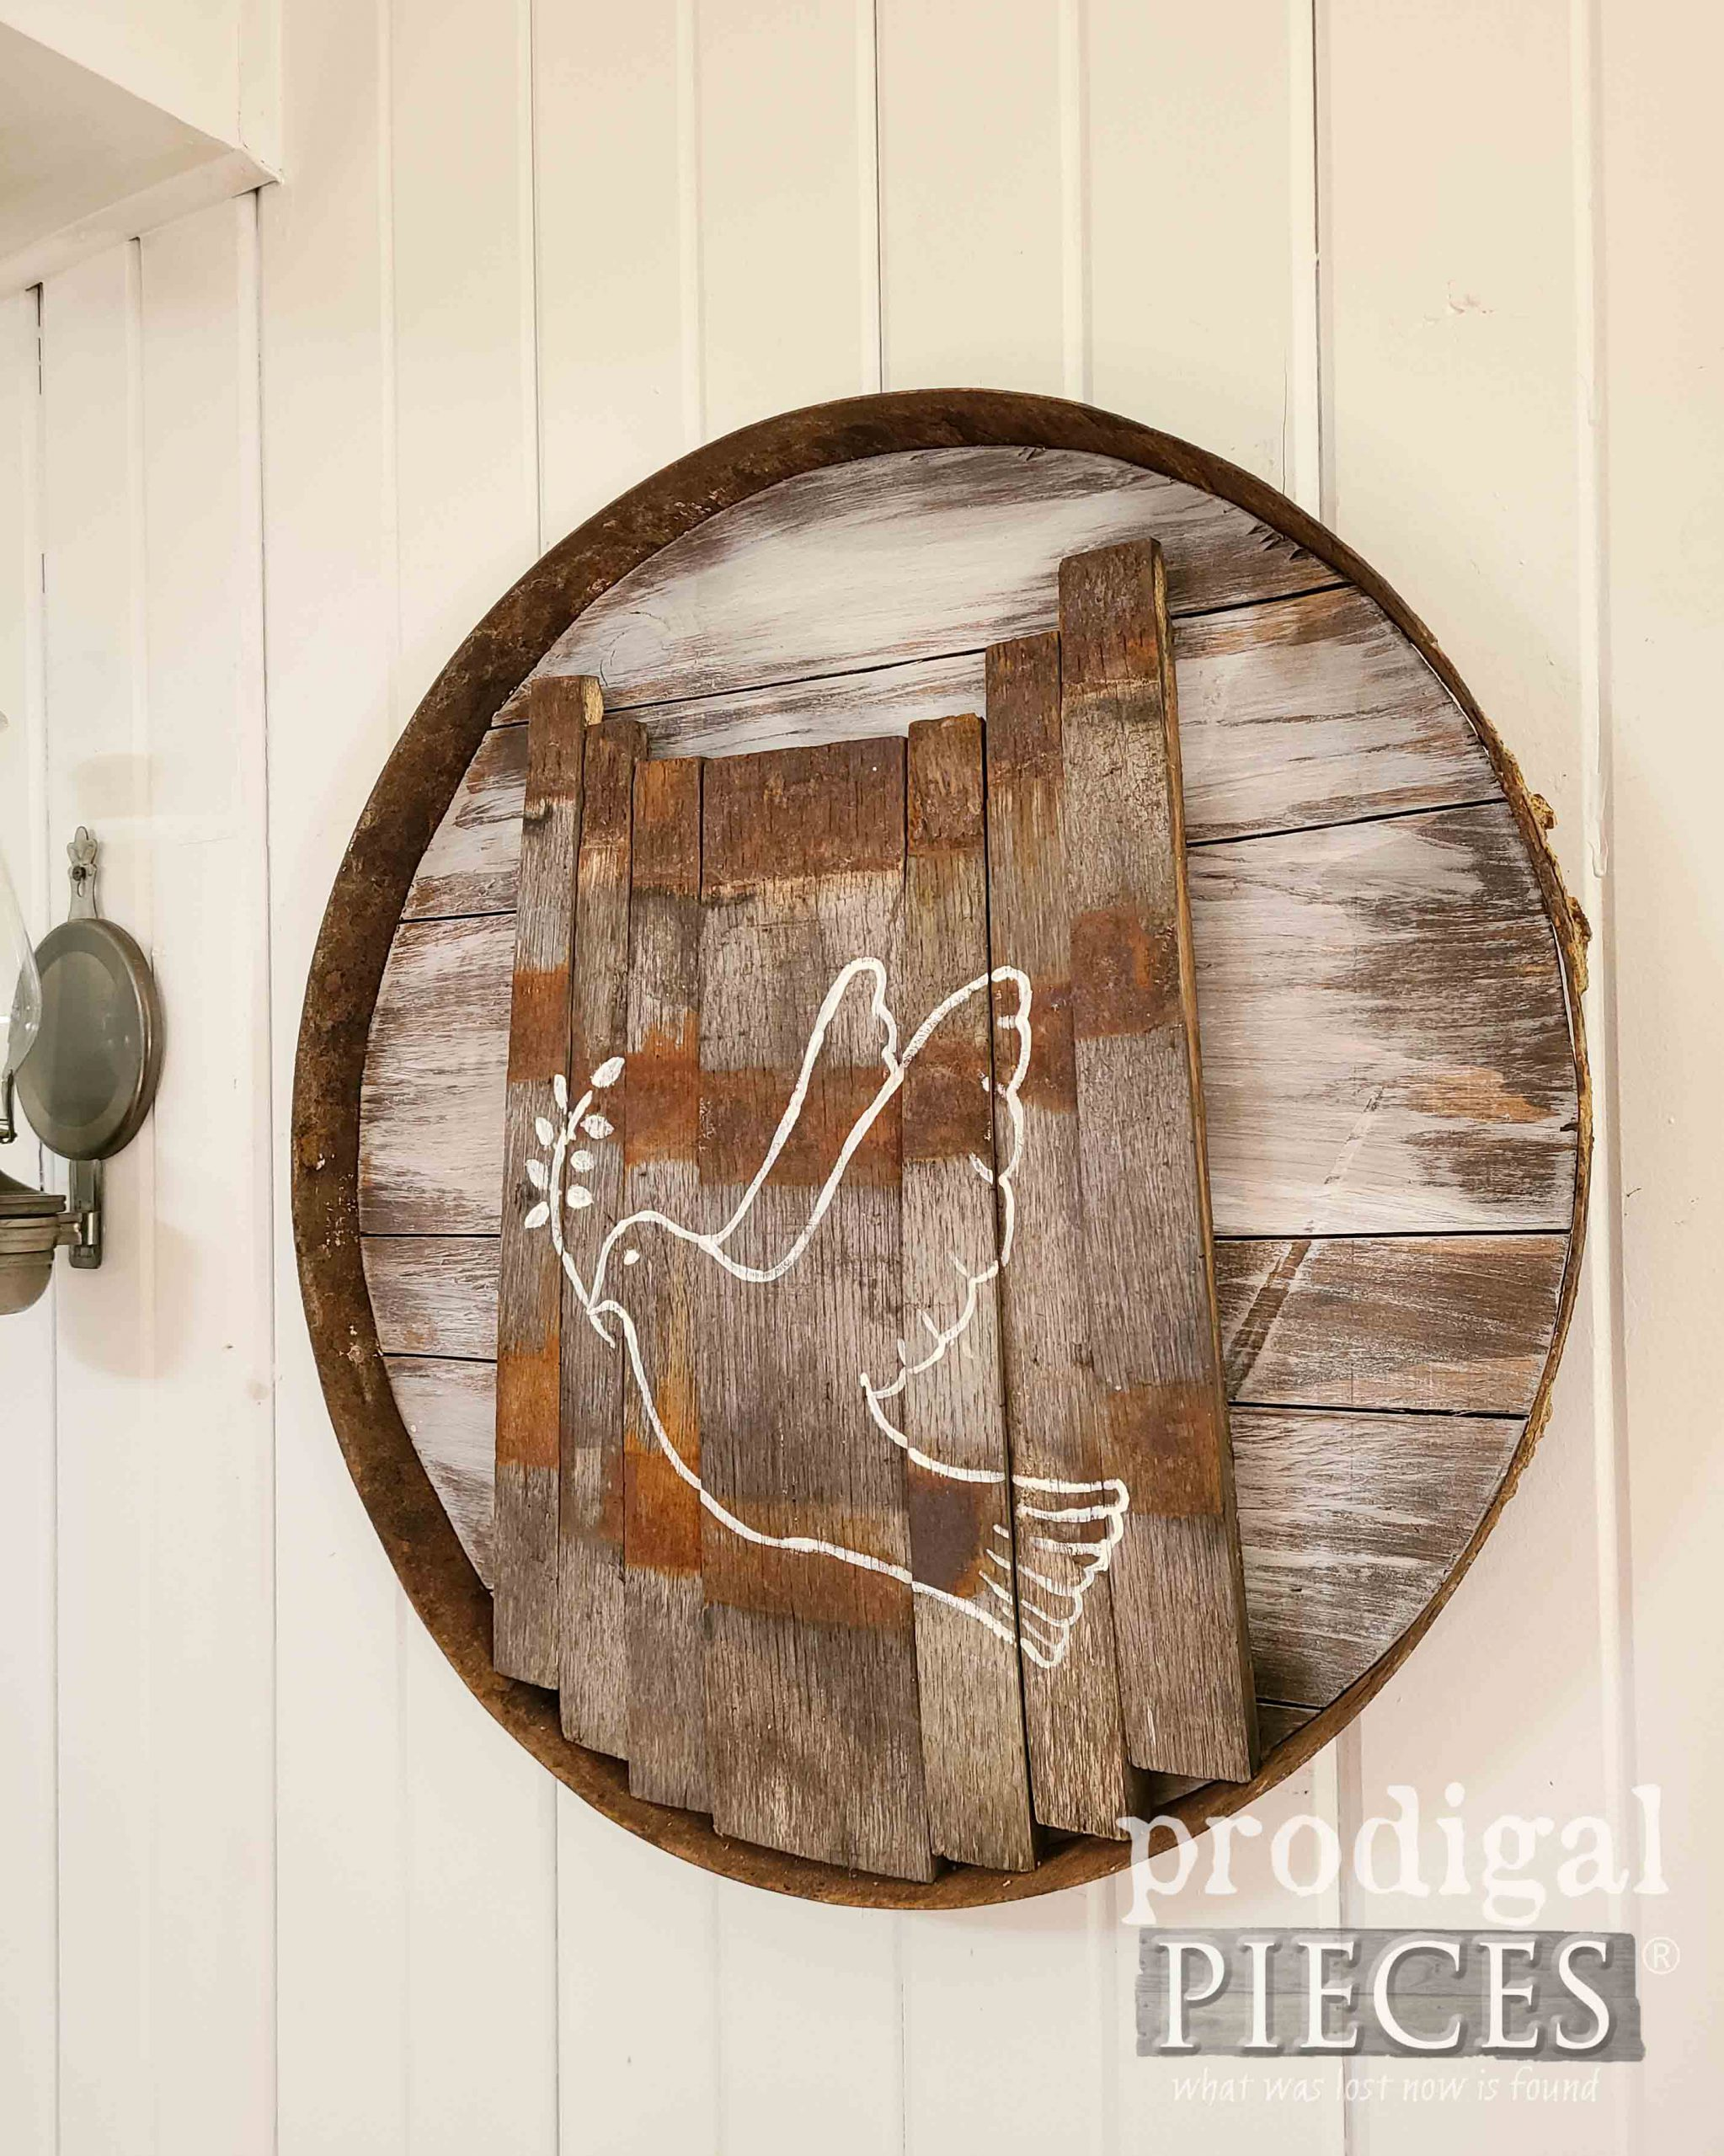 Handmade Rustic Farmhouse Art with Dove by Larissa of Prodigal Pieces | prodigalpieces.com #prodigalpieces #farmhouse #art #home #homedecor